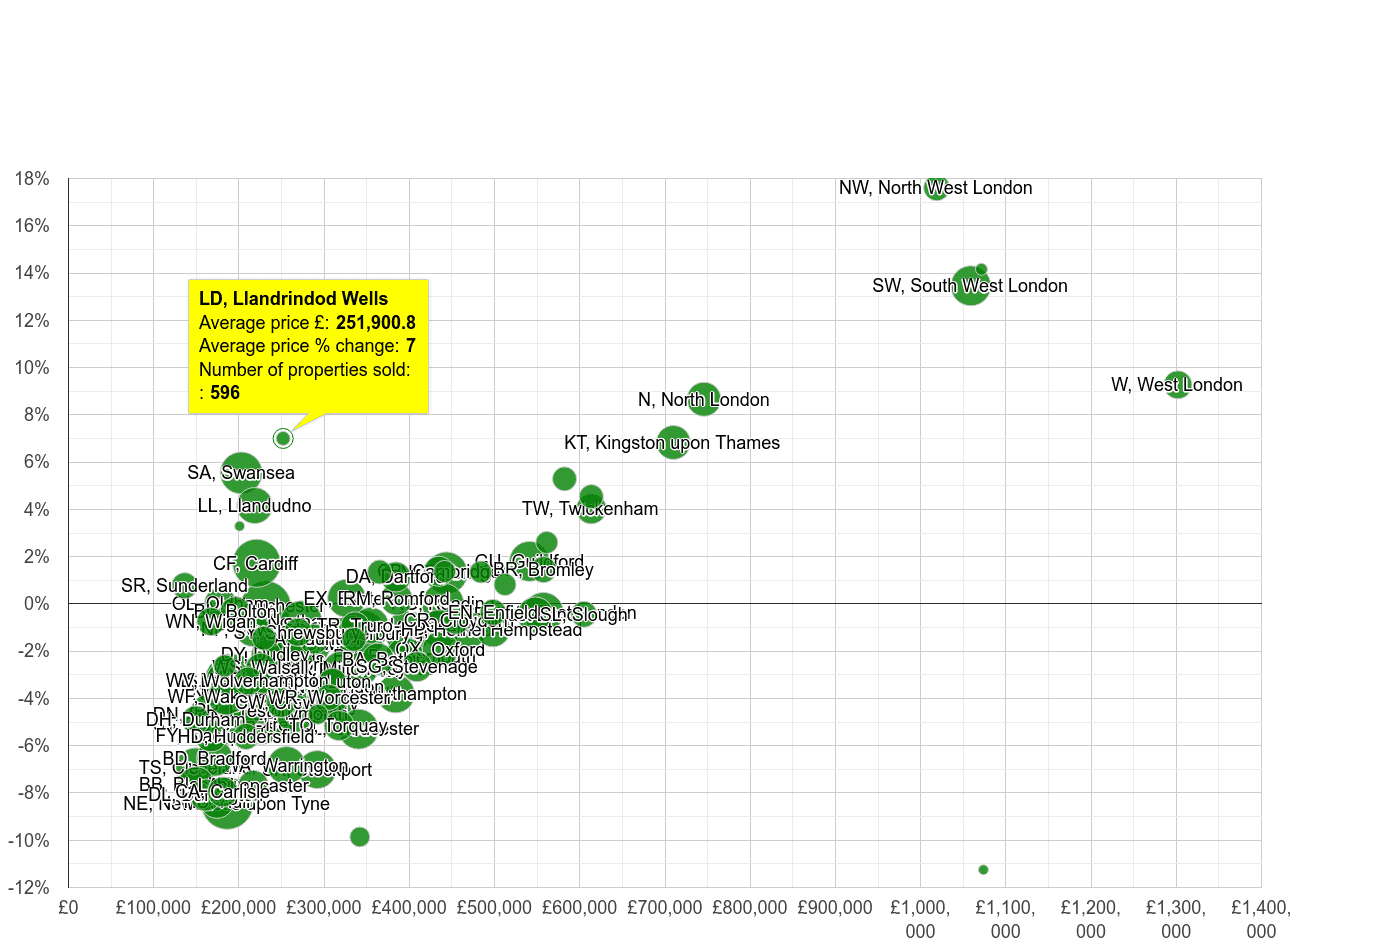 Llandrindod Wells house prices compared to other areas